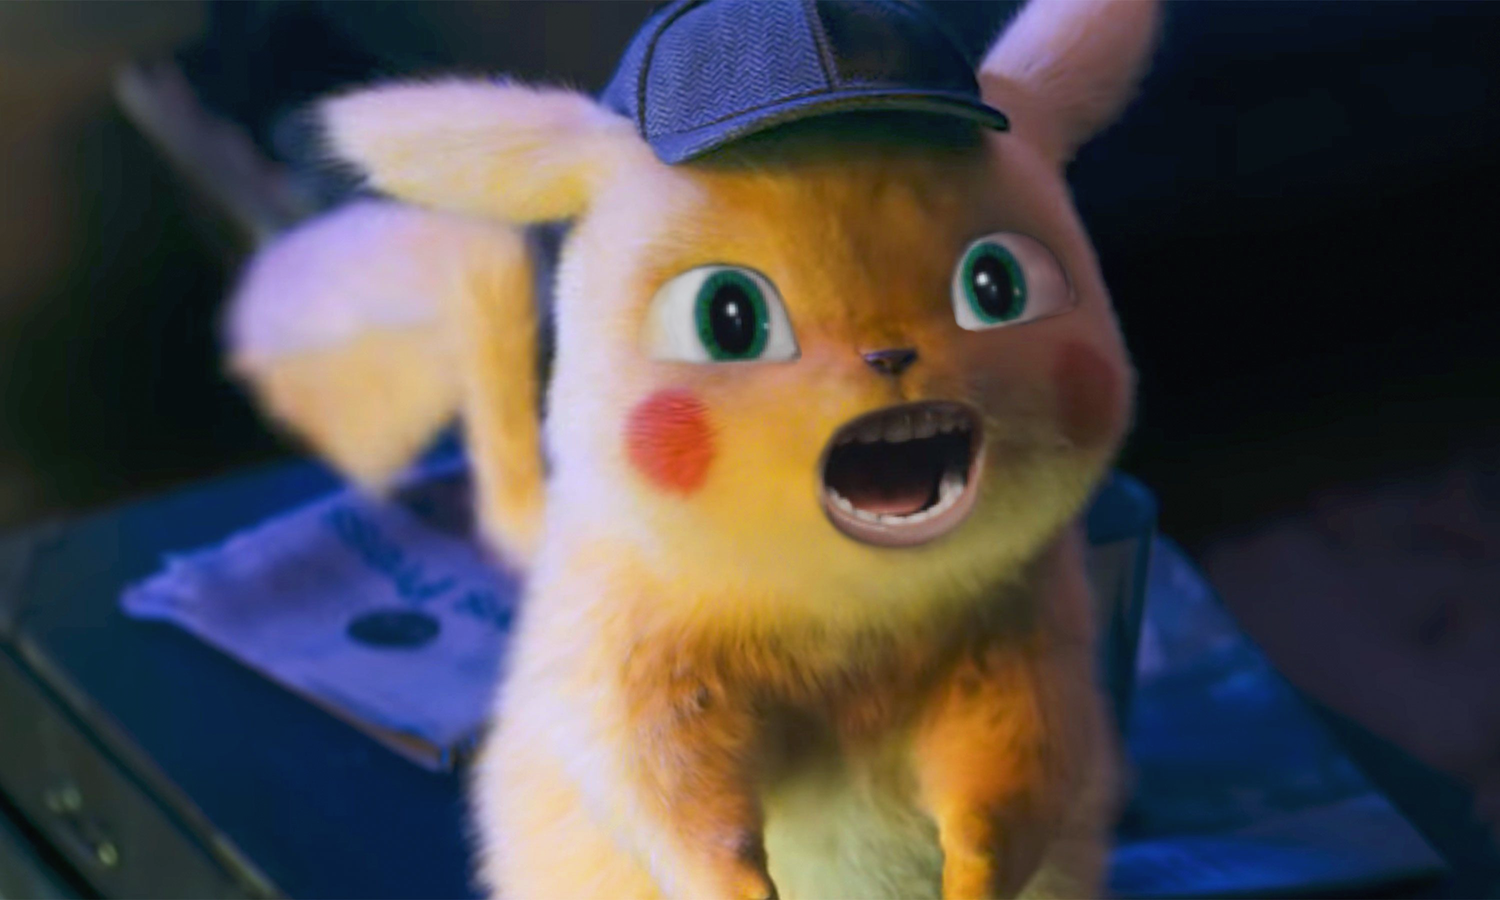 Detective Pikachu With Sonic S Eyes And Mouth Sonic The Hedgehog